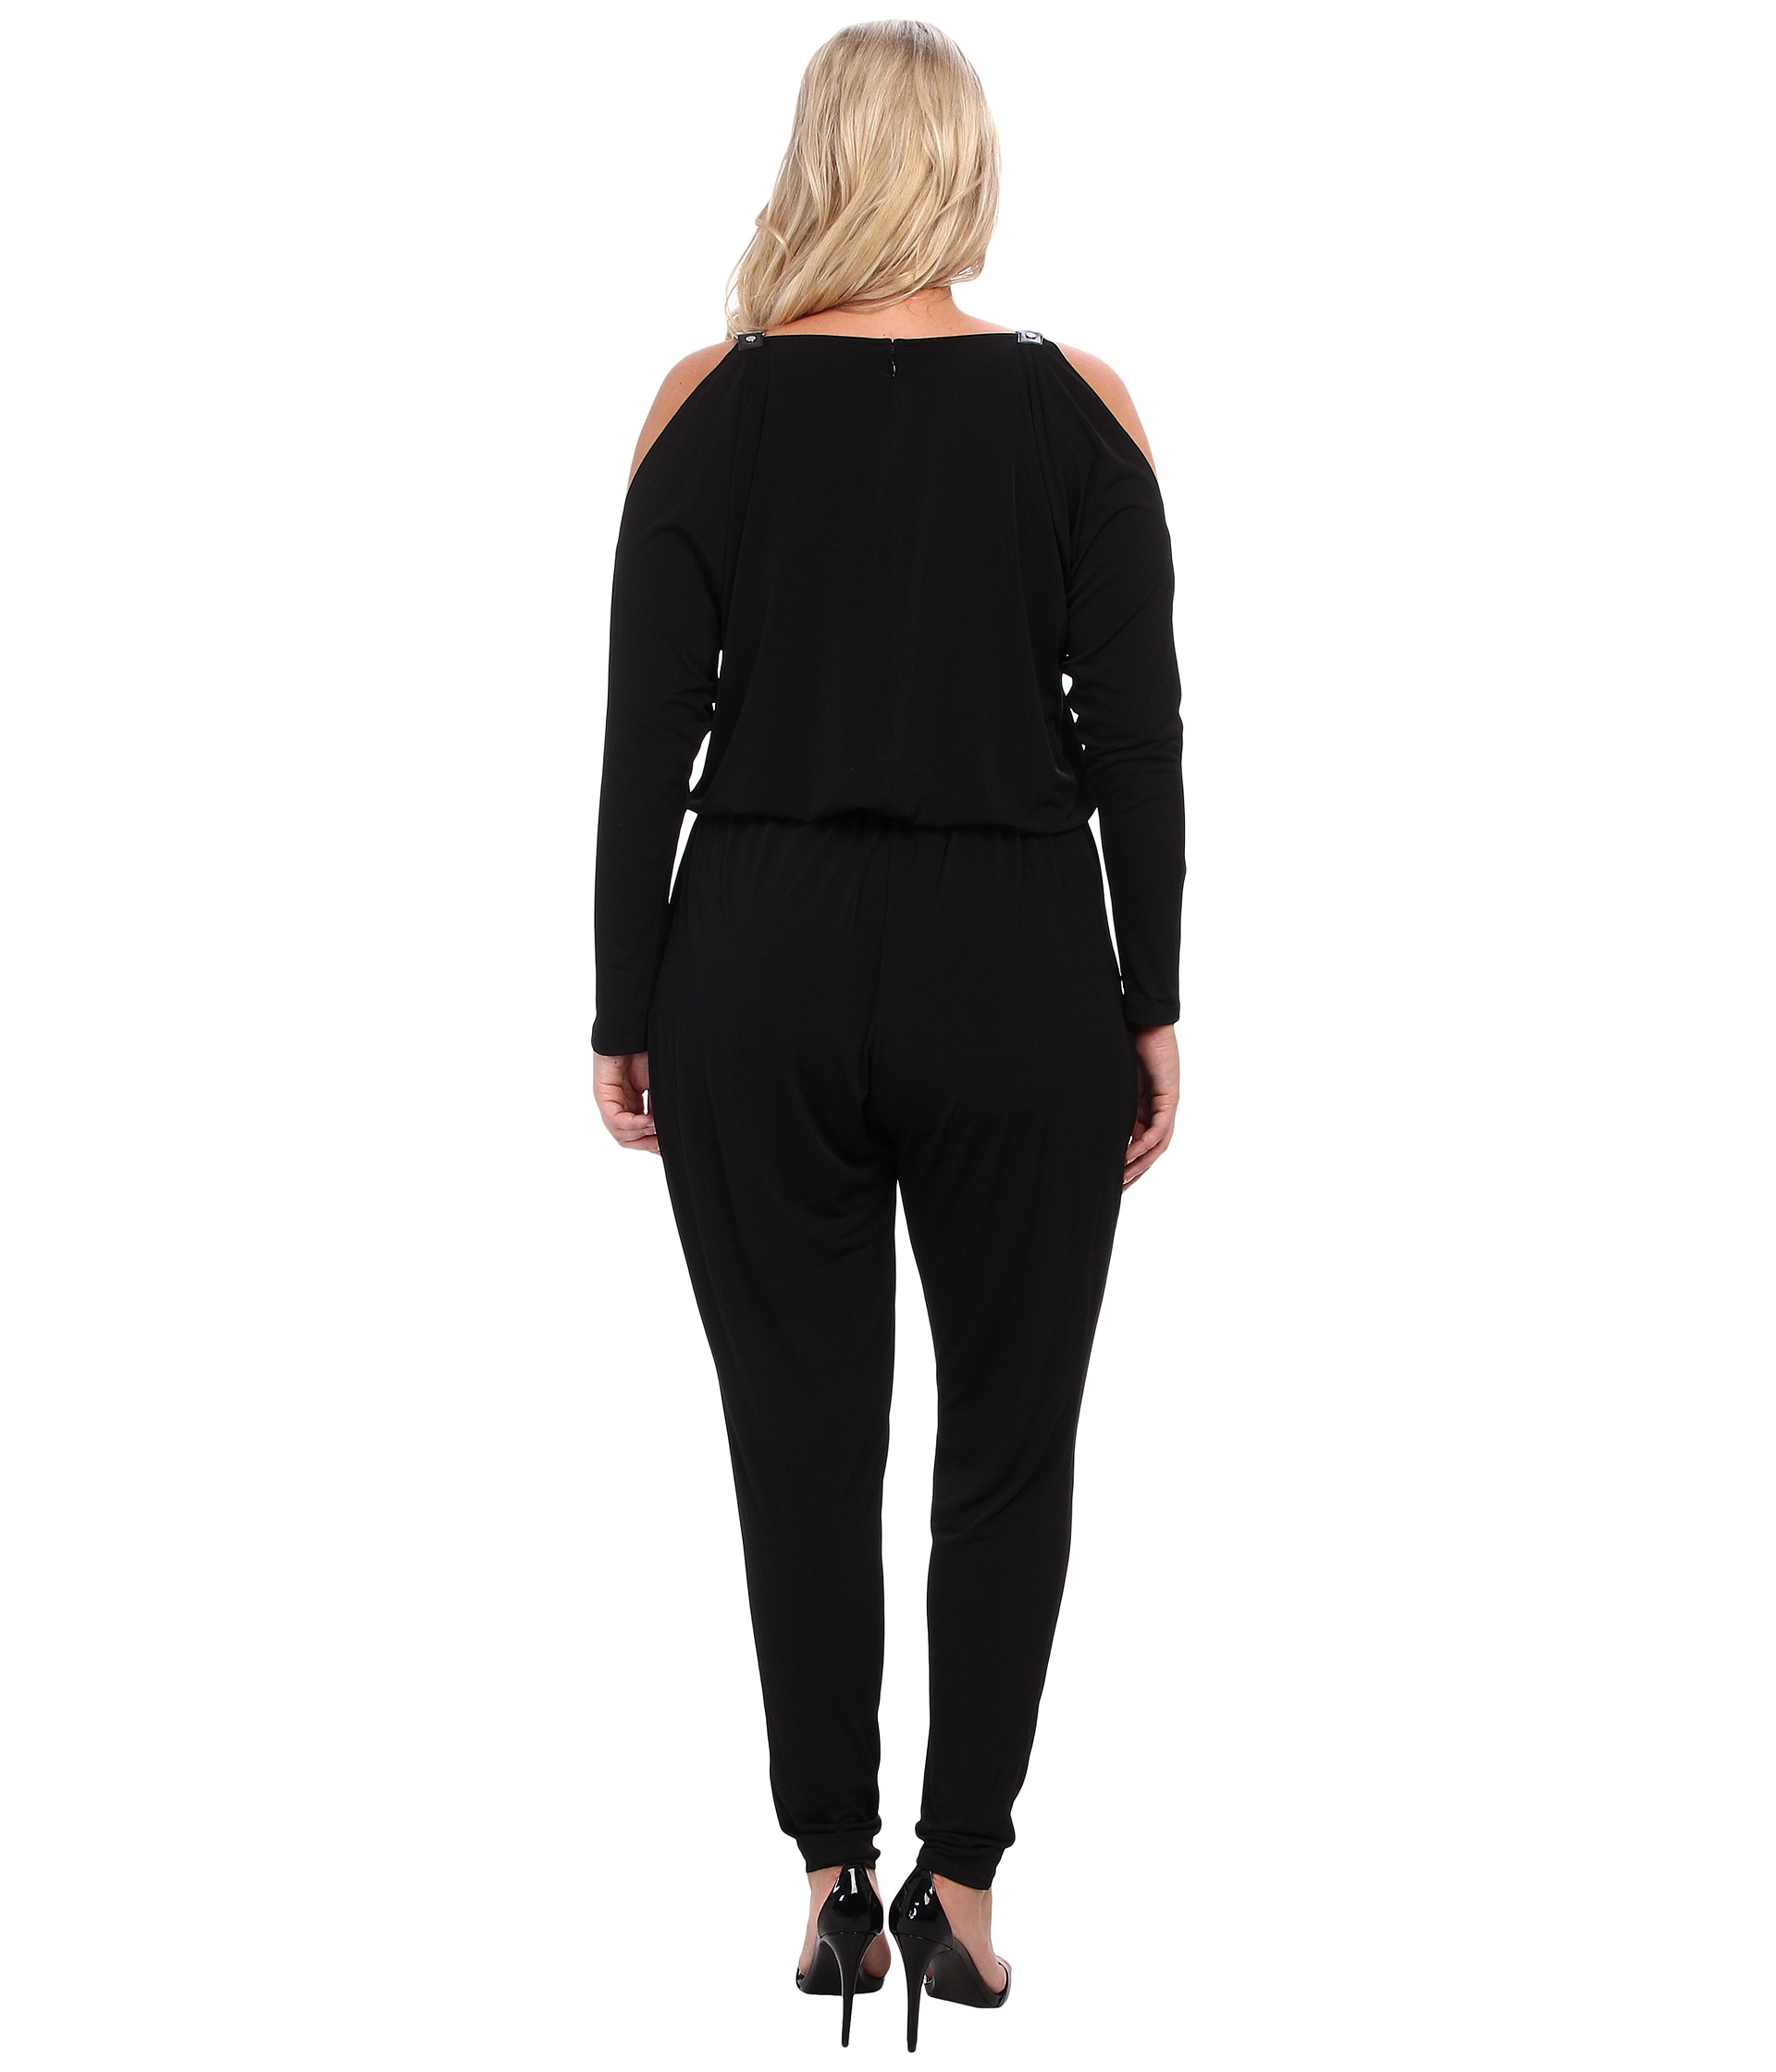 michael michael kors plus size chain strap jumpsuit shipped free at zappos. Black Bedroom Furniture Sets. Home Design Ideas